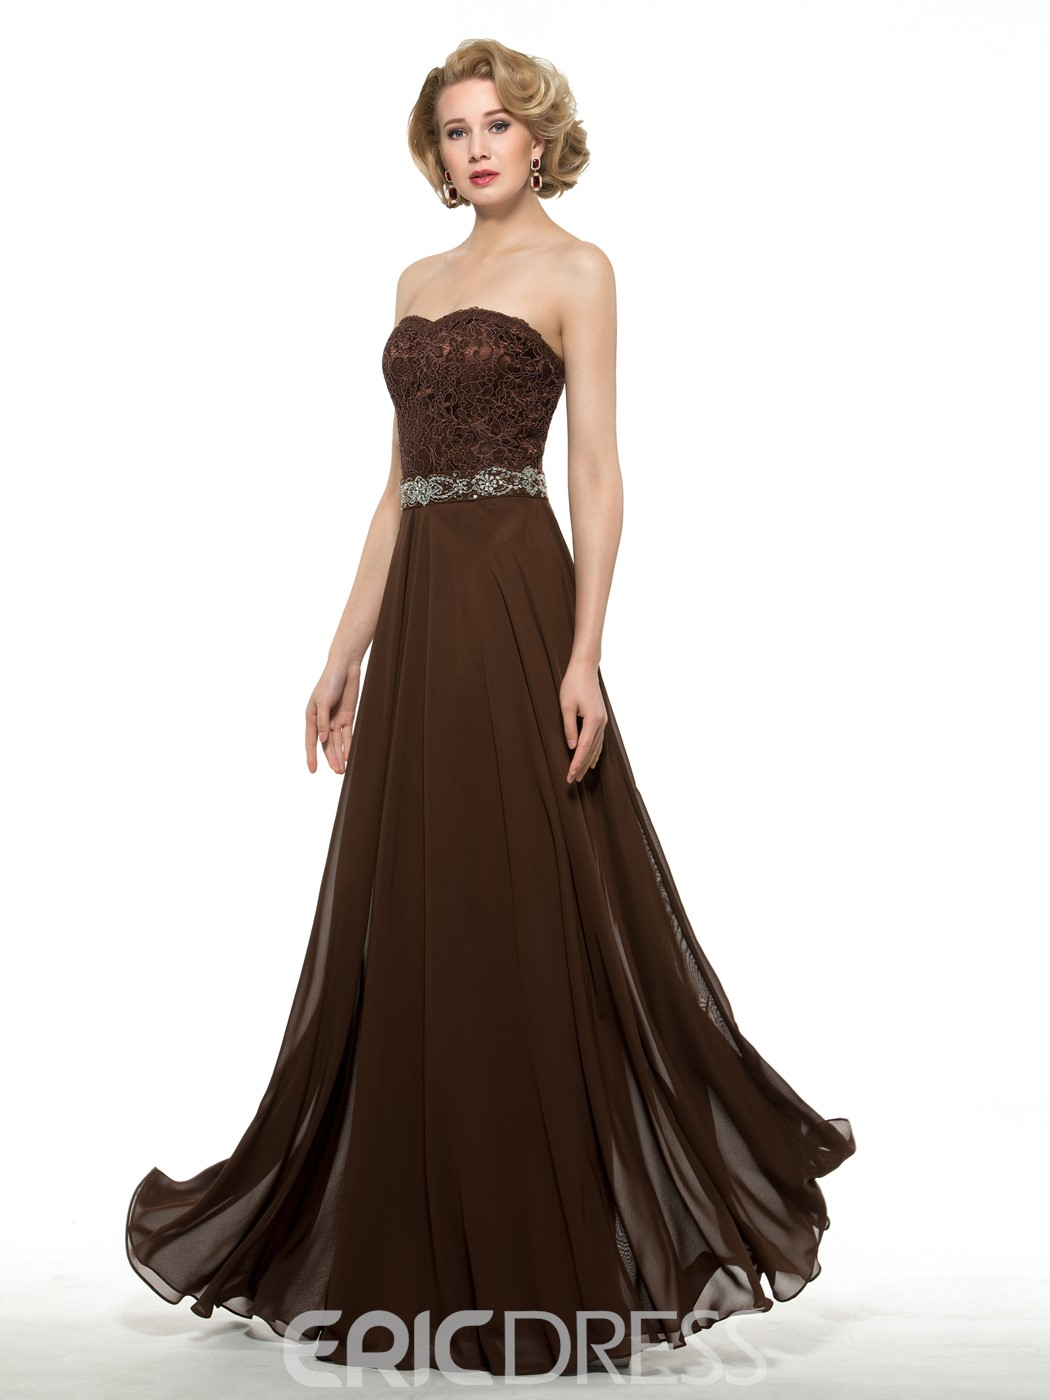 Ericdress Elegant Sweetheart A Line Mother Of The Bride Dress With Jacket